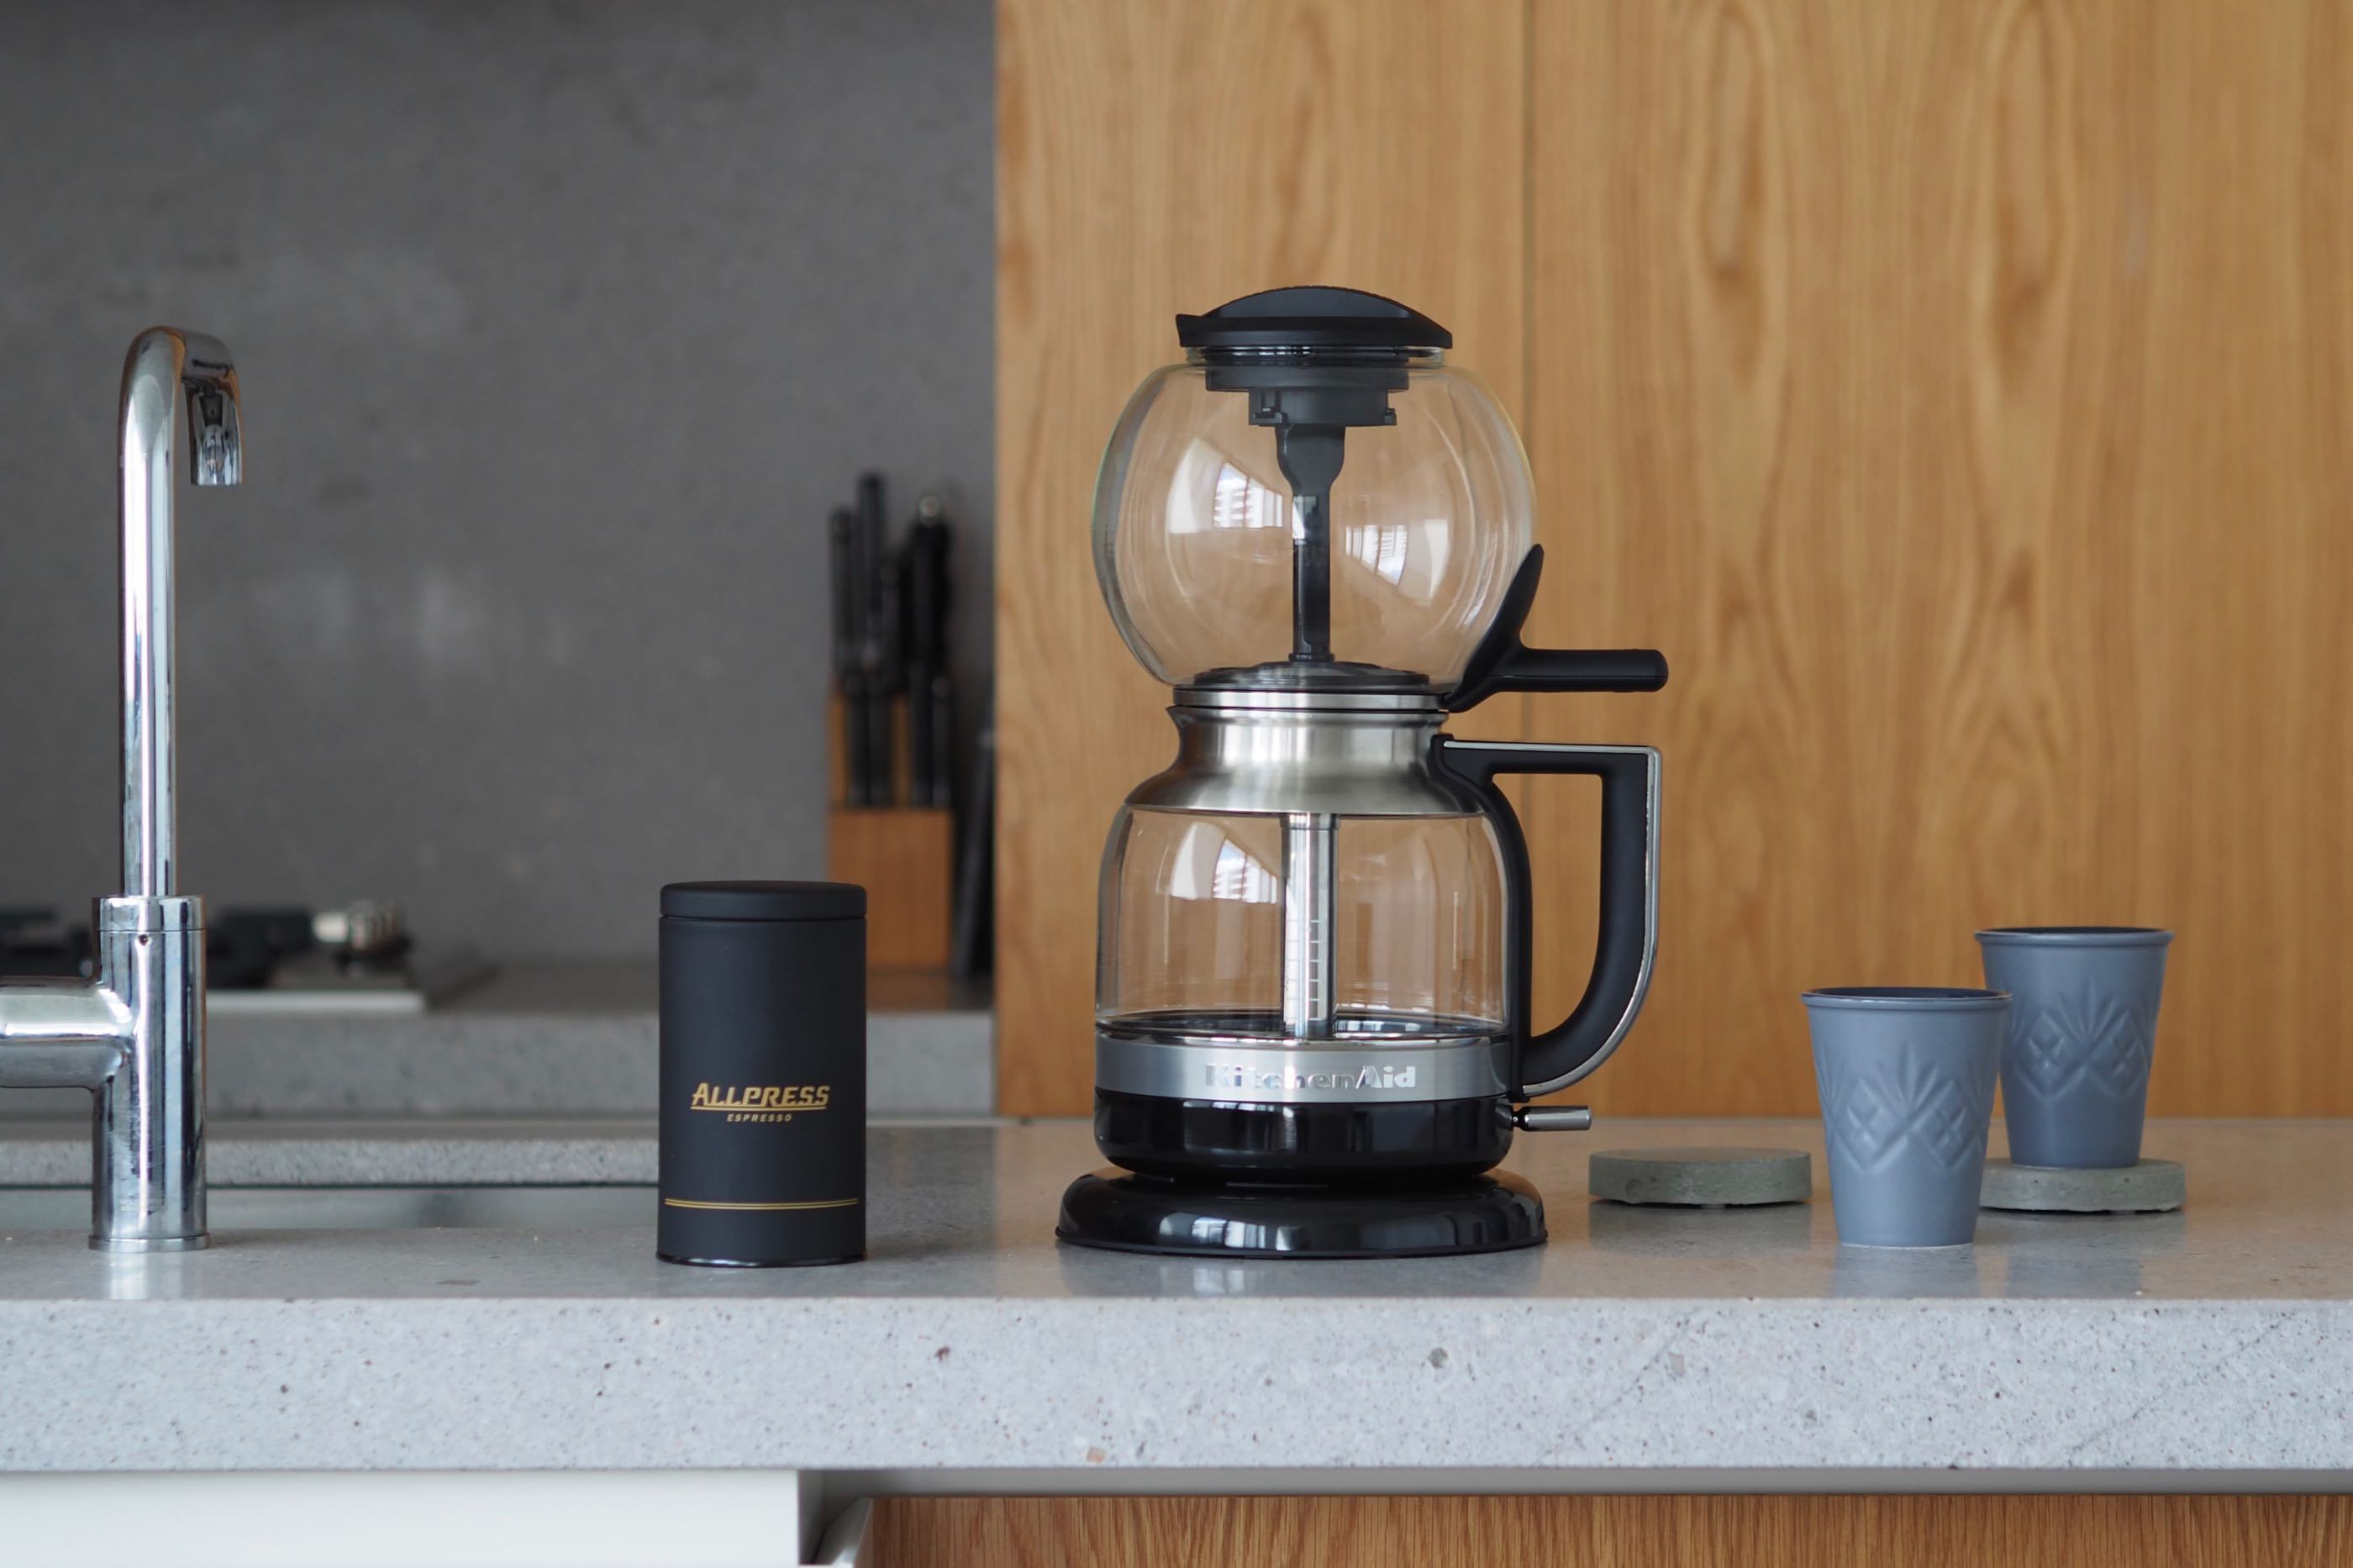 Kitchenaid Siphon Coffee Brewer Review Giveaway Hey Gents Syphon Maker Electric